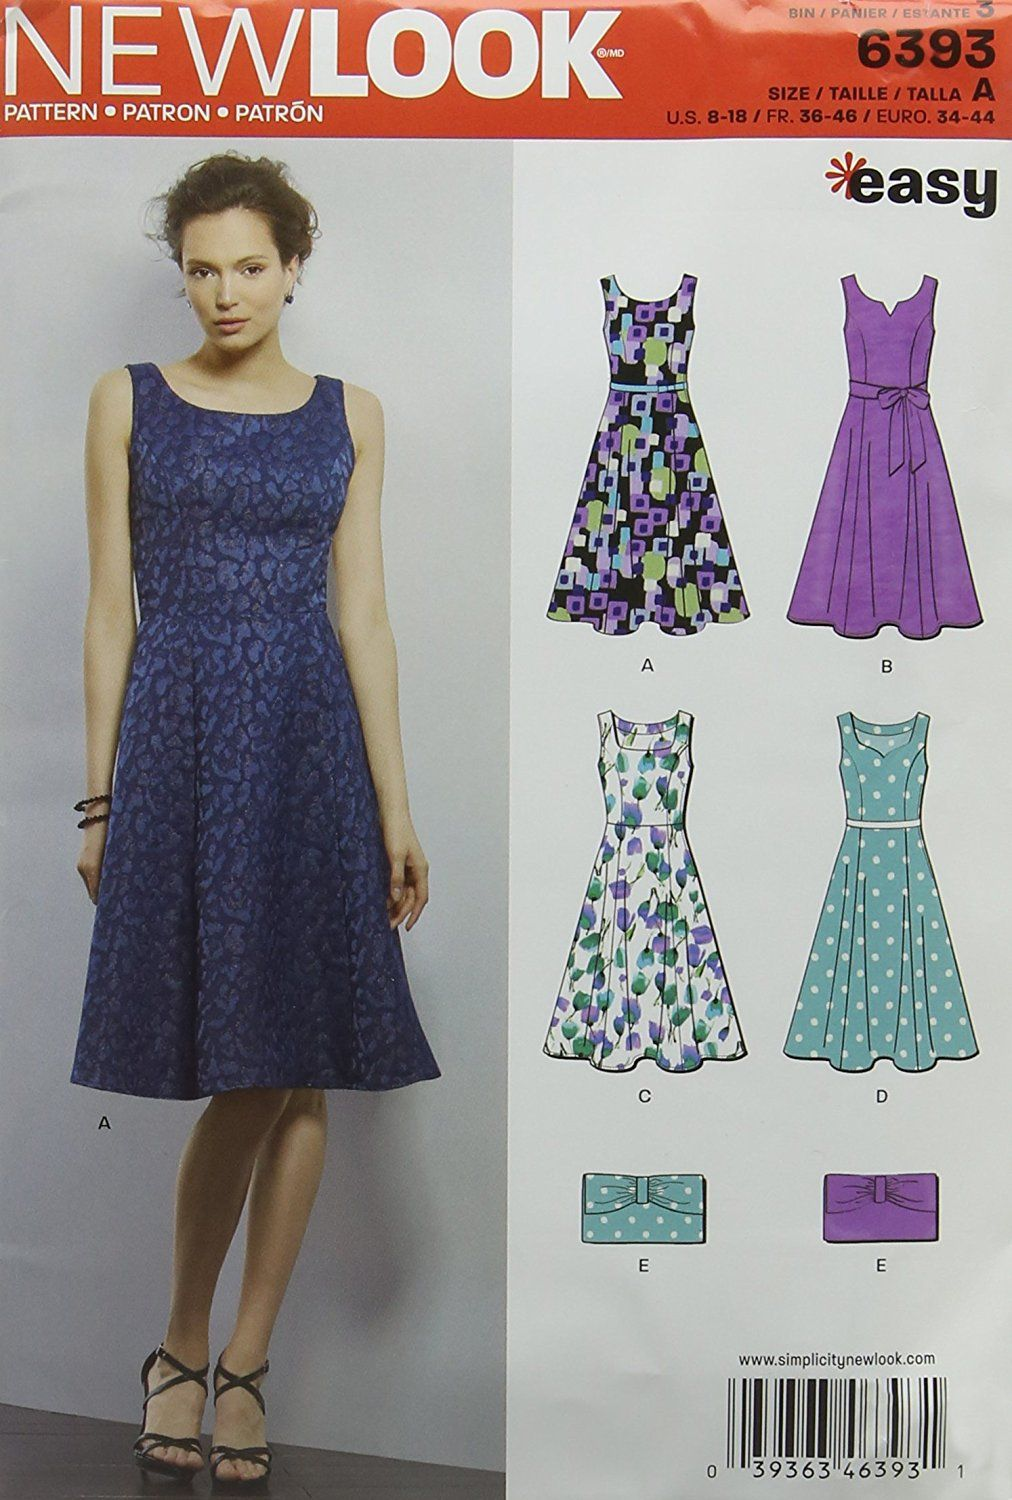 New Look 6393 Size A Misses' Easy Dress and Purse Sewing